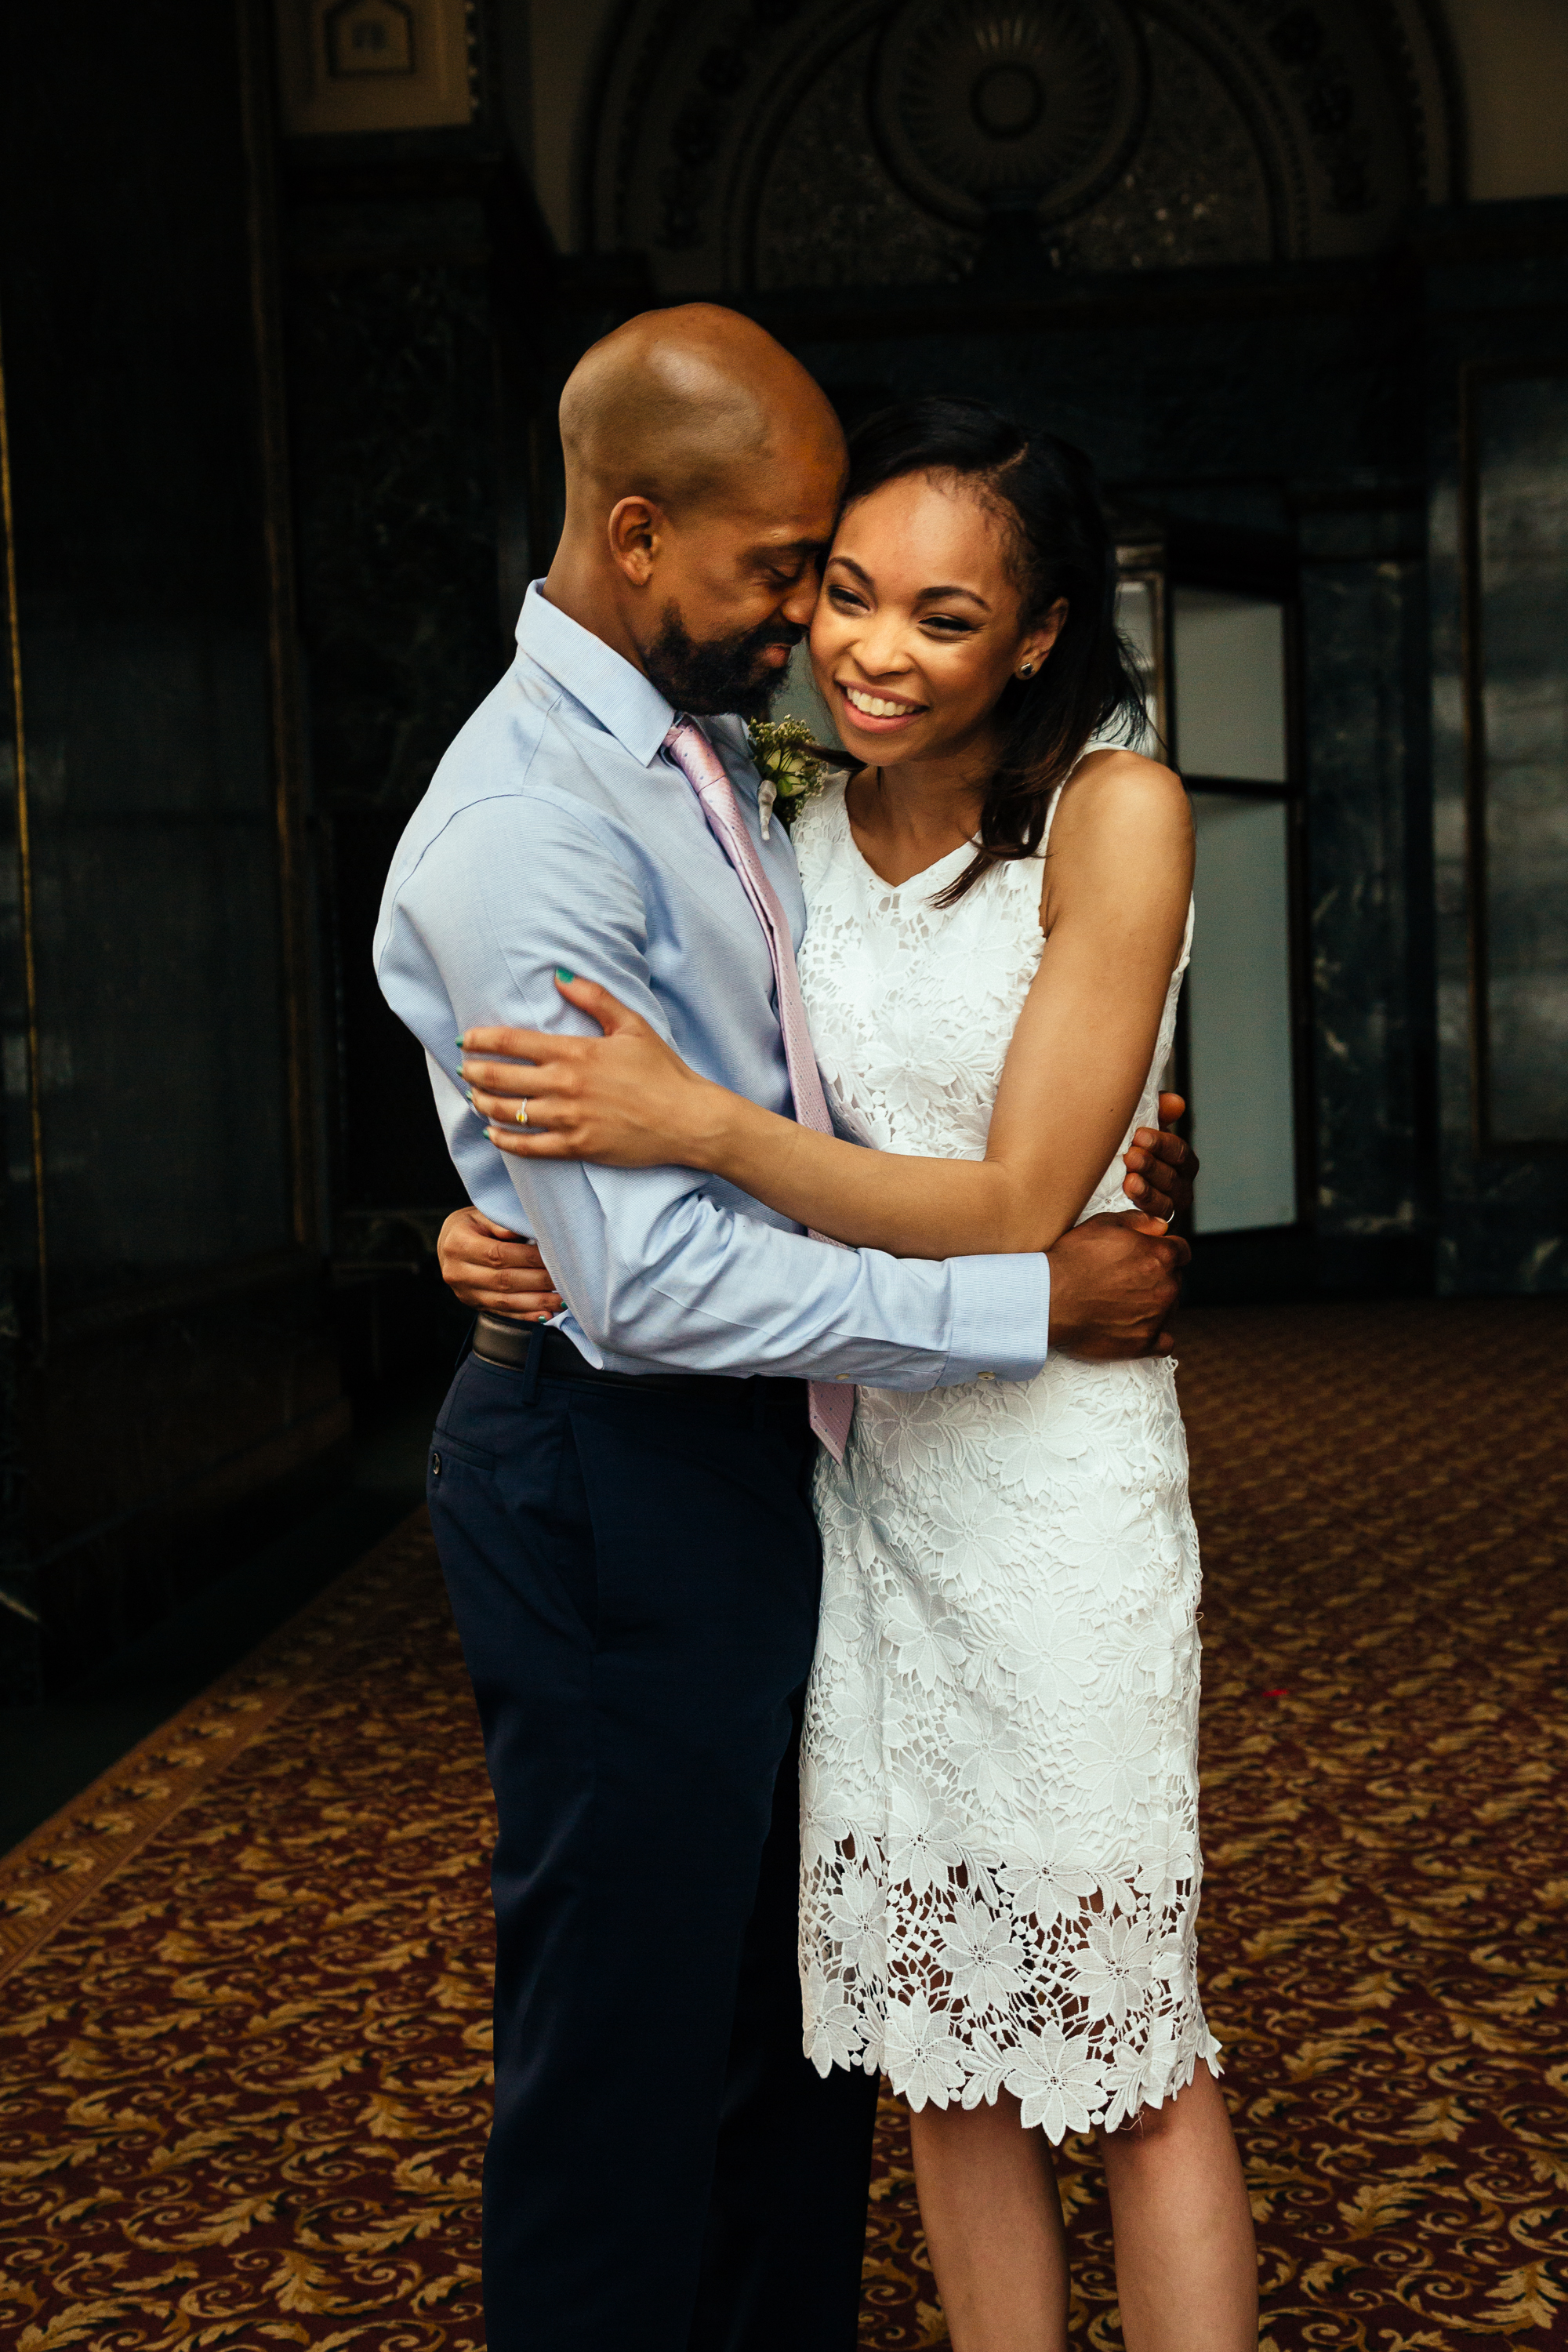 chicago_elopement_tony_brittany-19.jpg